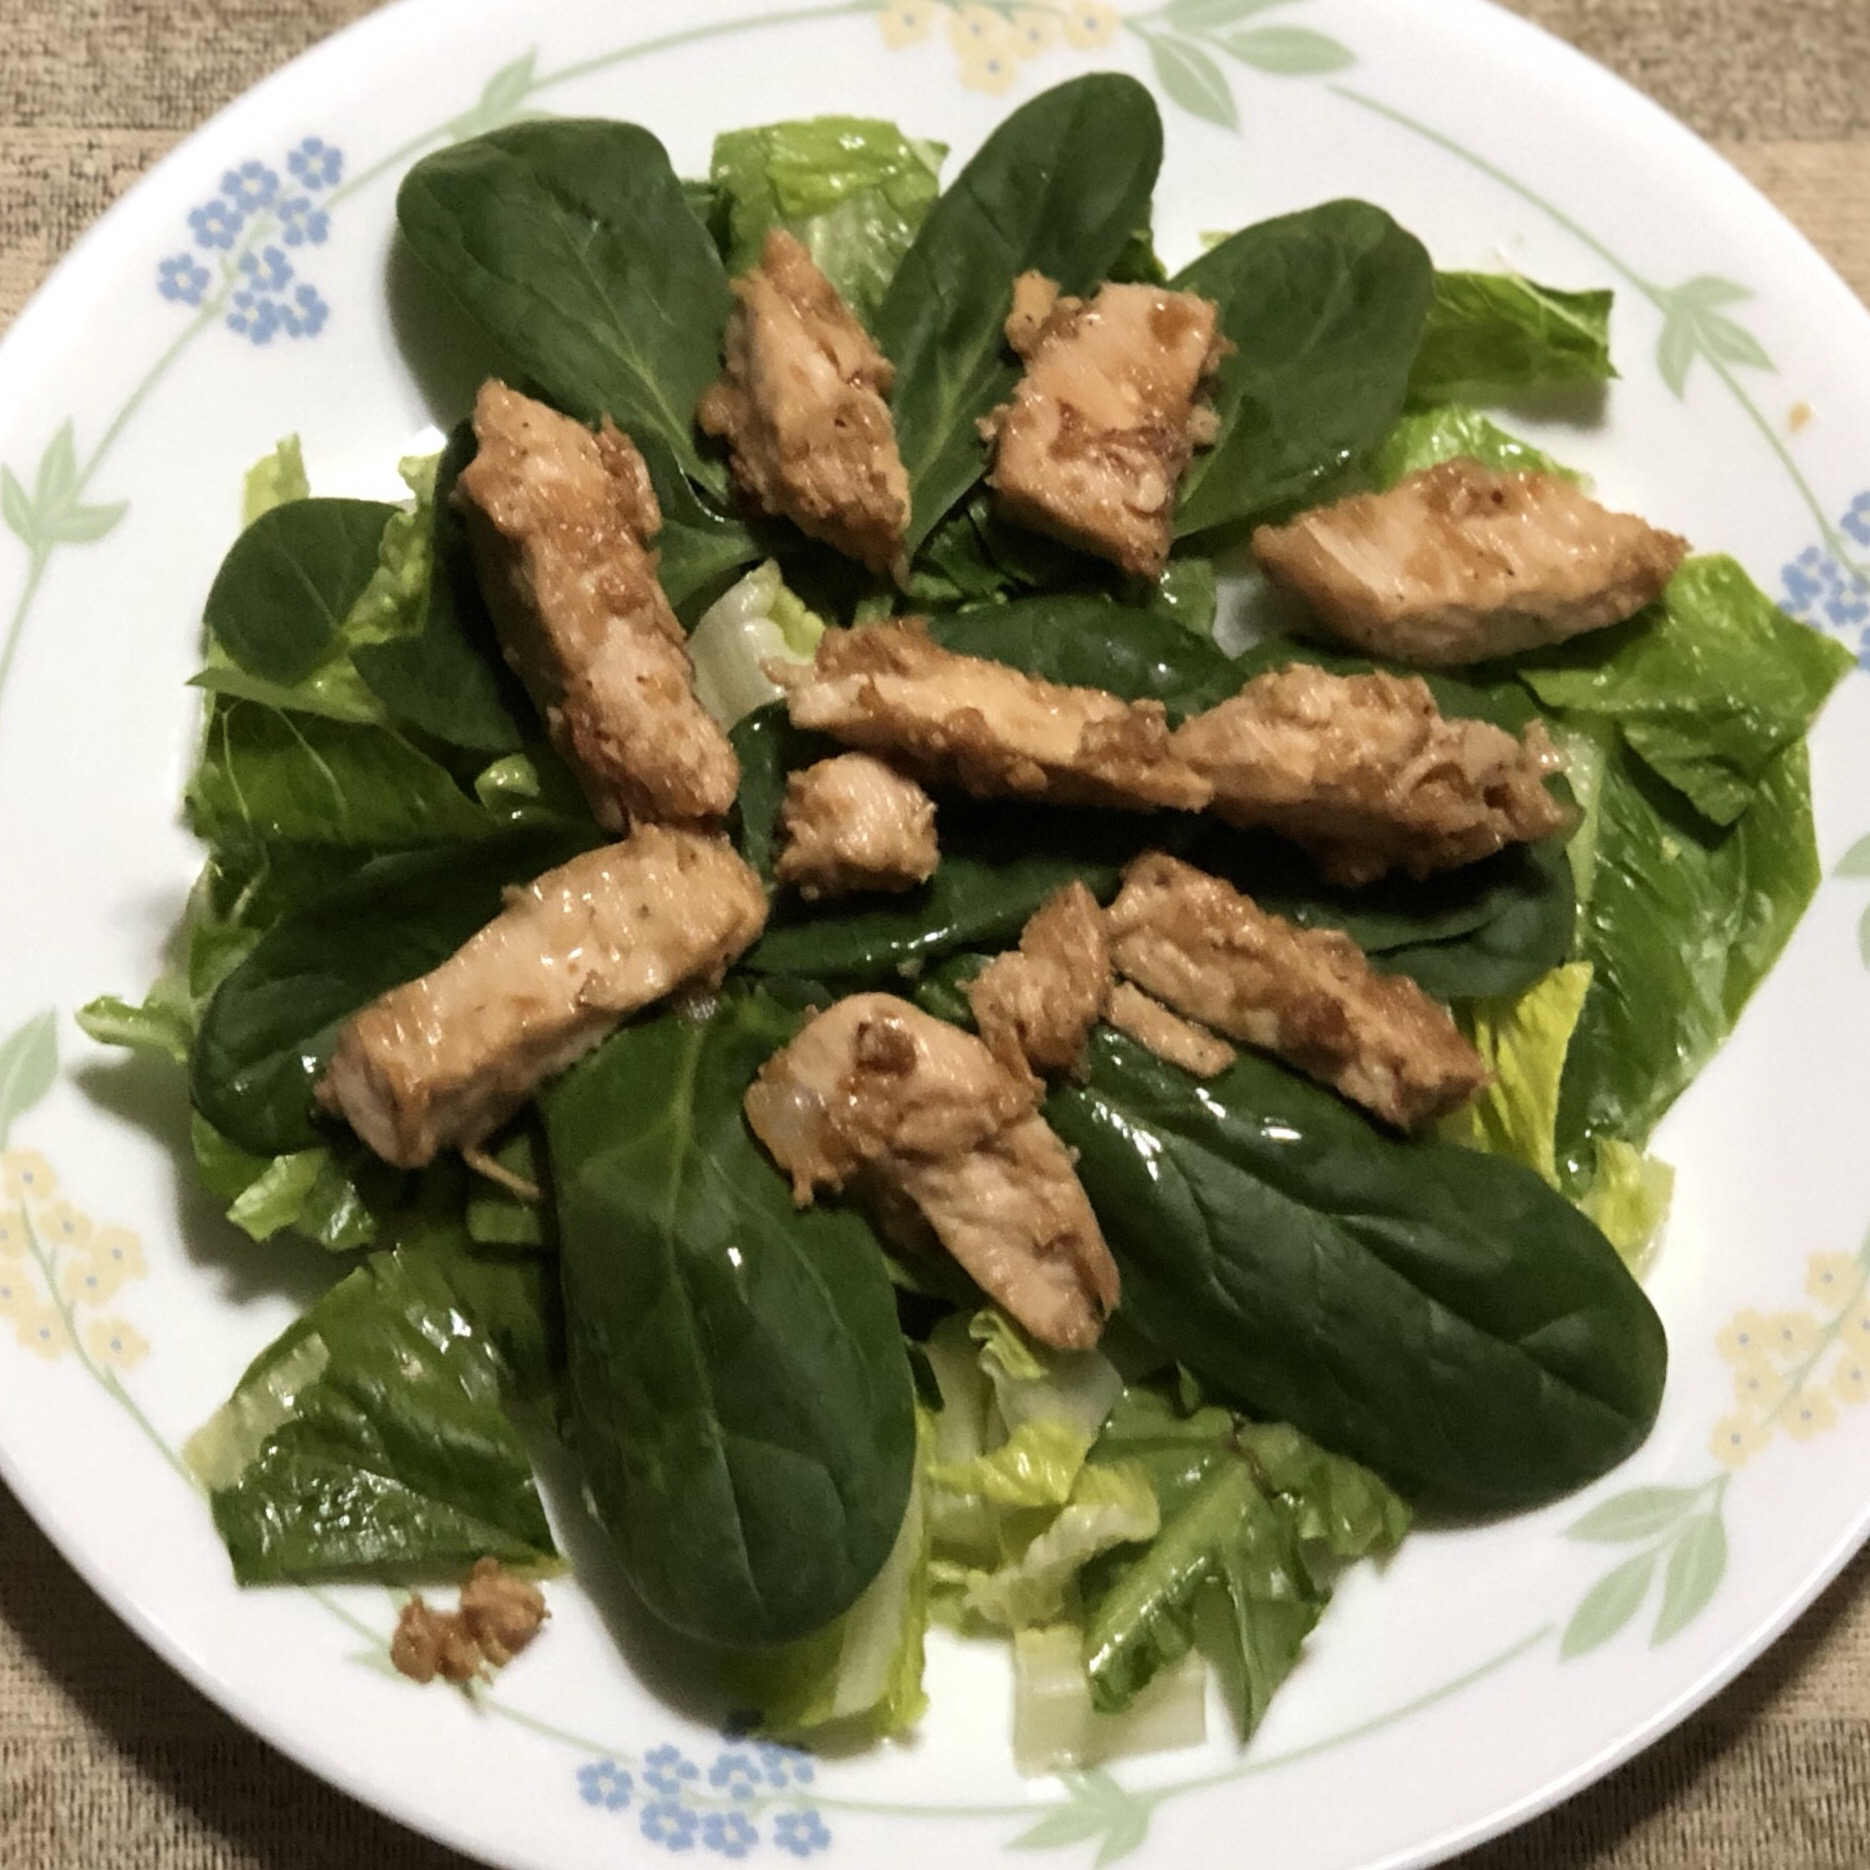 Lime-Garlic Chicken and Spinach Salad Cait F.